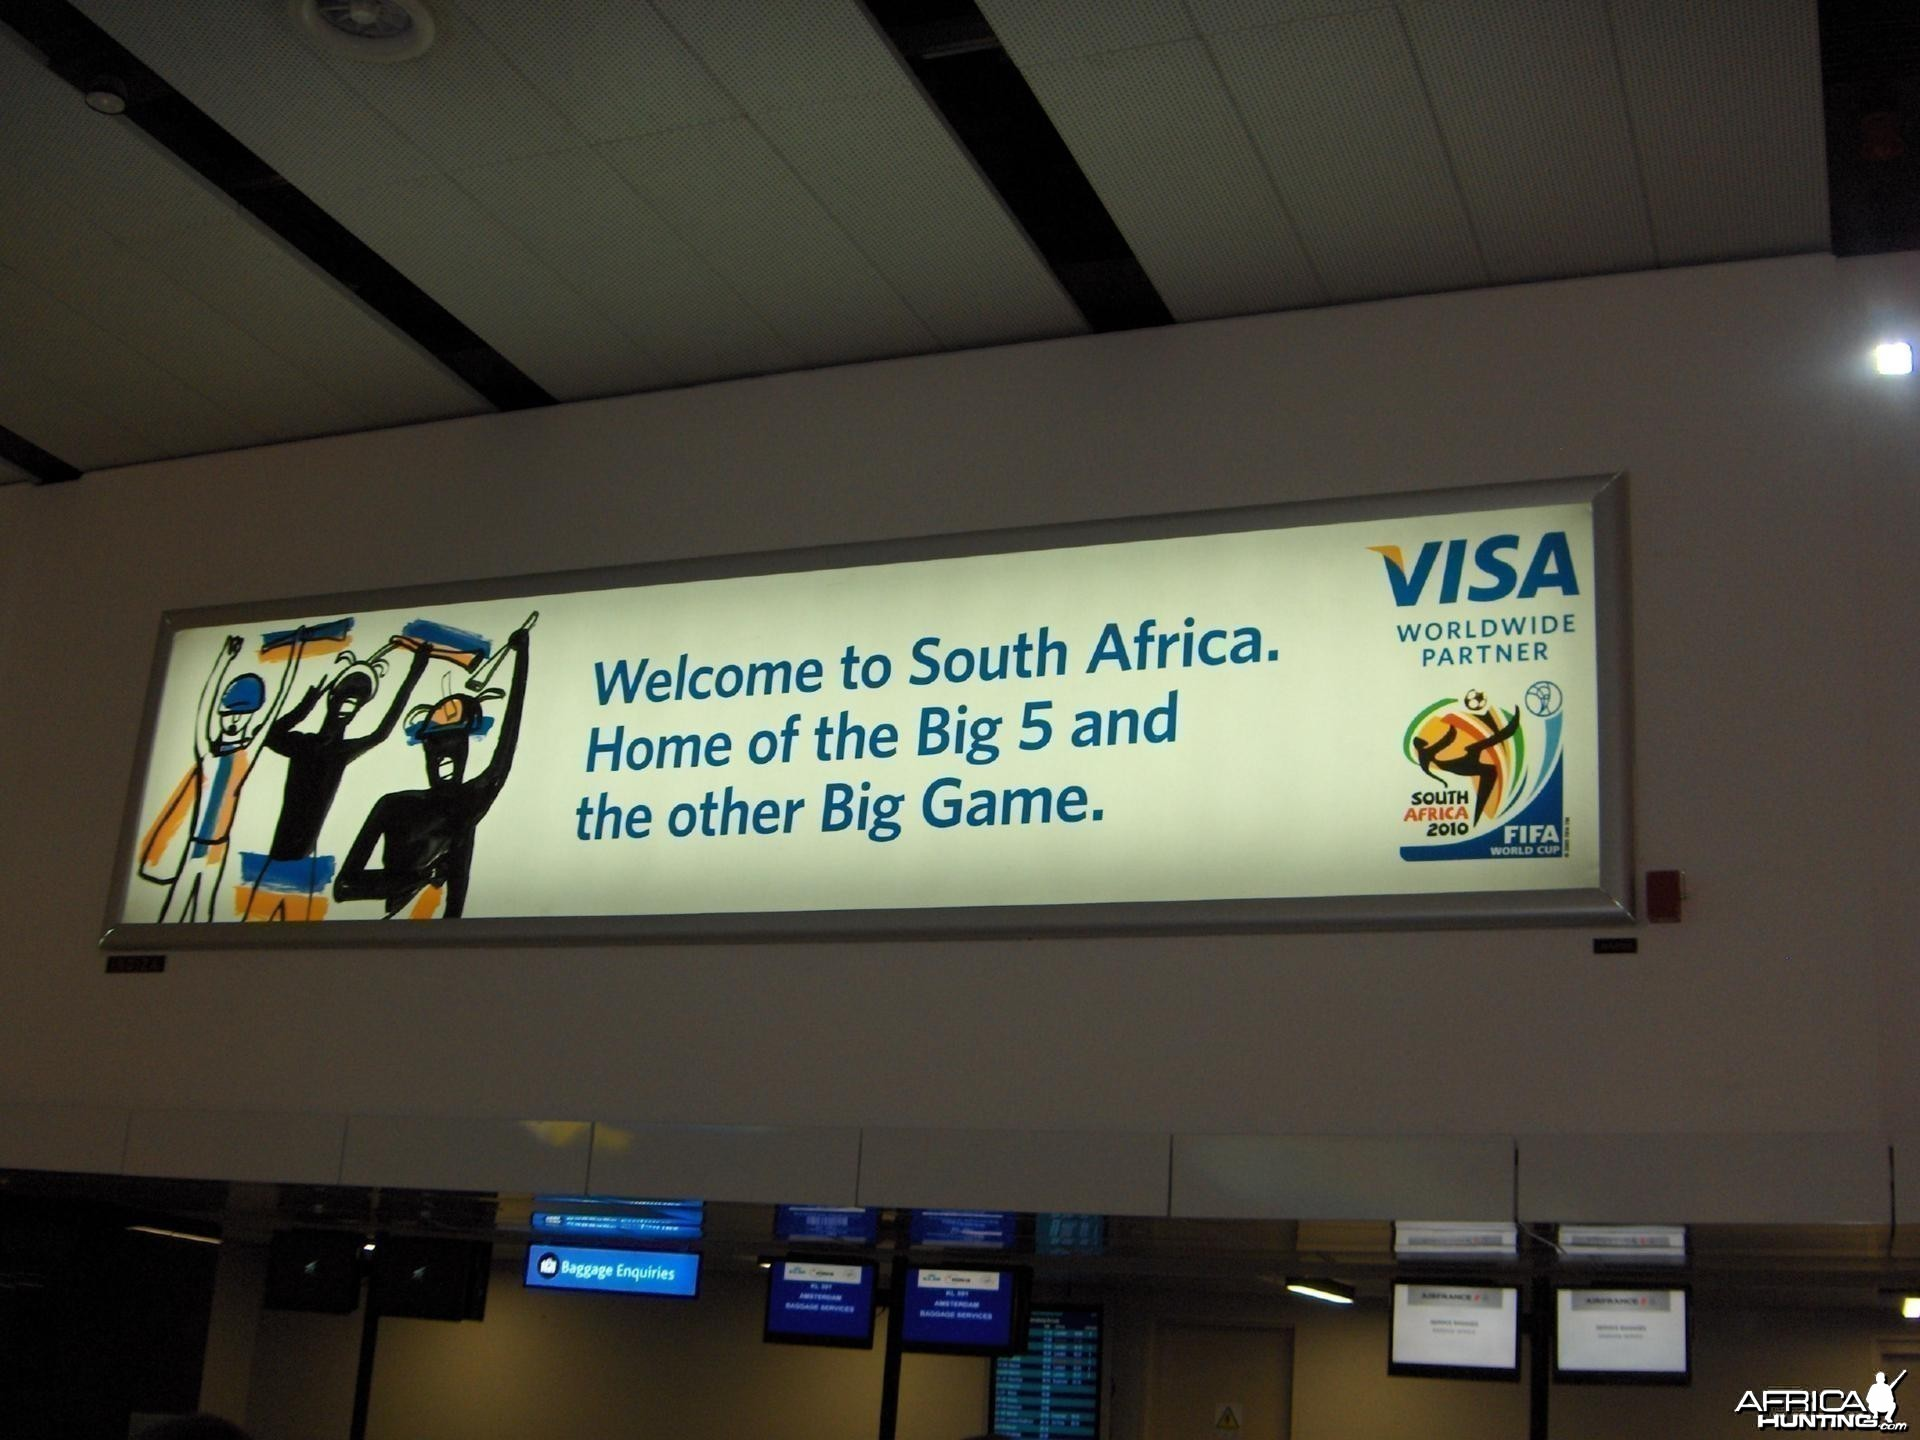 Welcome to South Africa